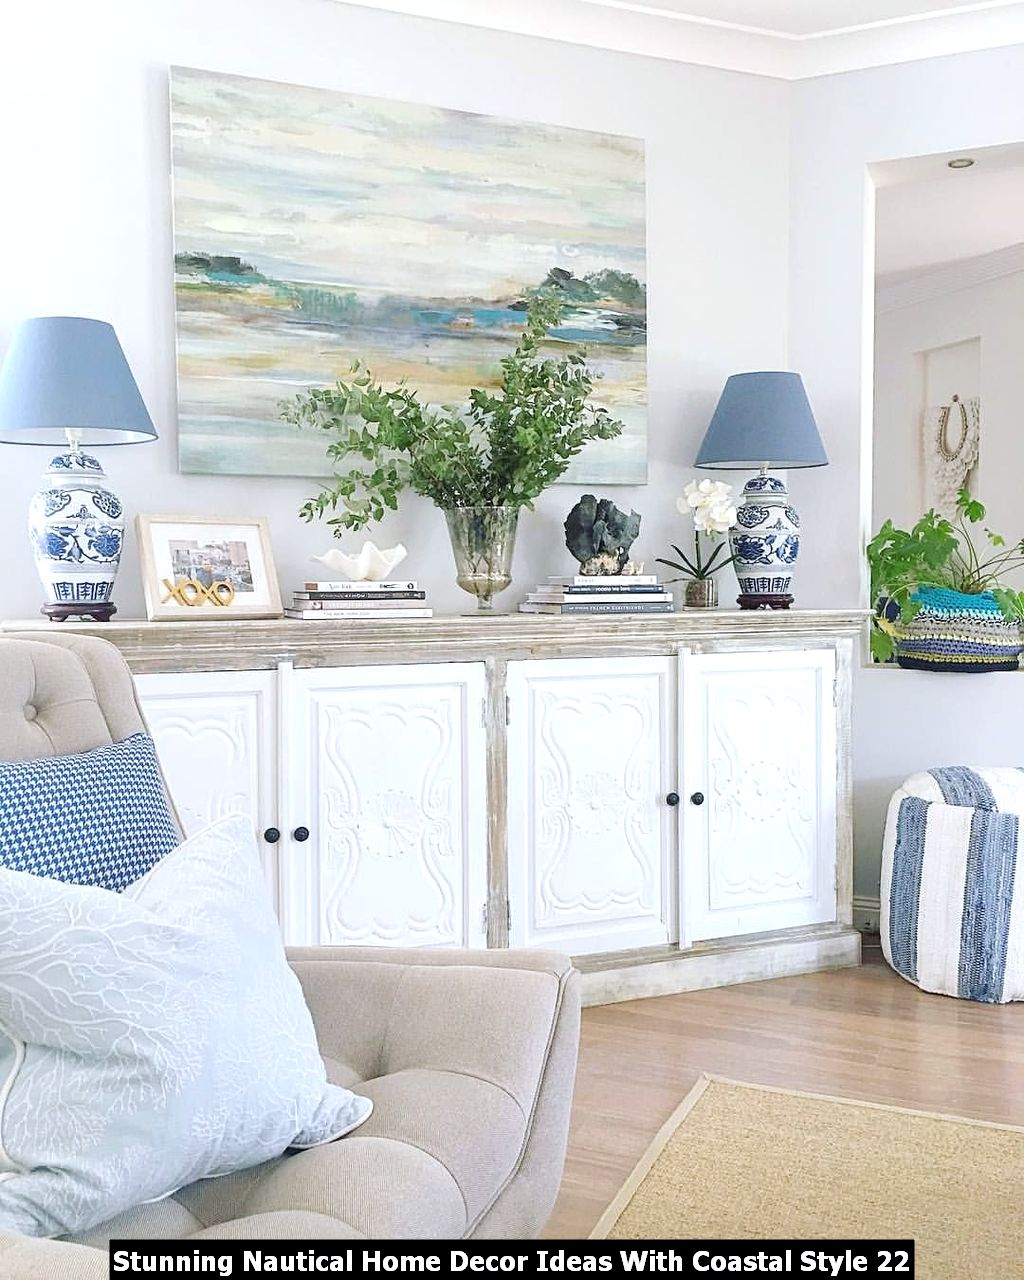 Stunning Nautical Home Decor Ideas With Coastal Style 22